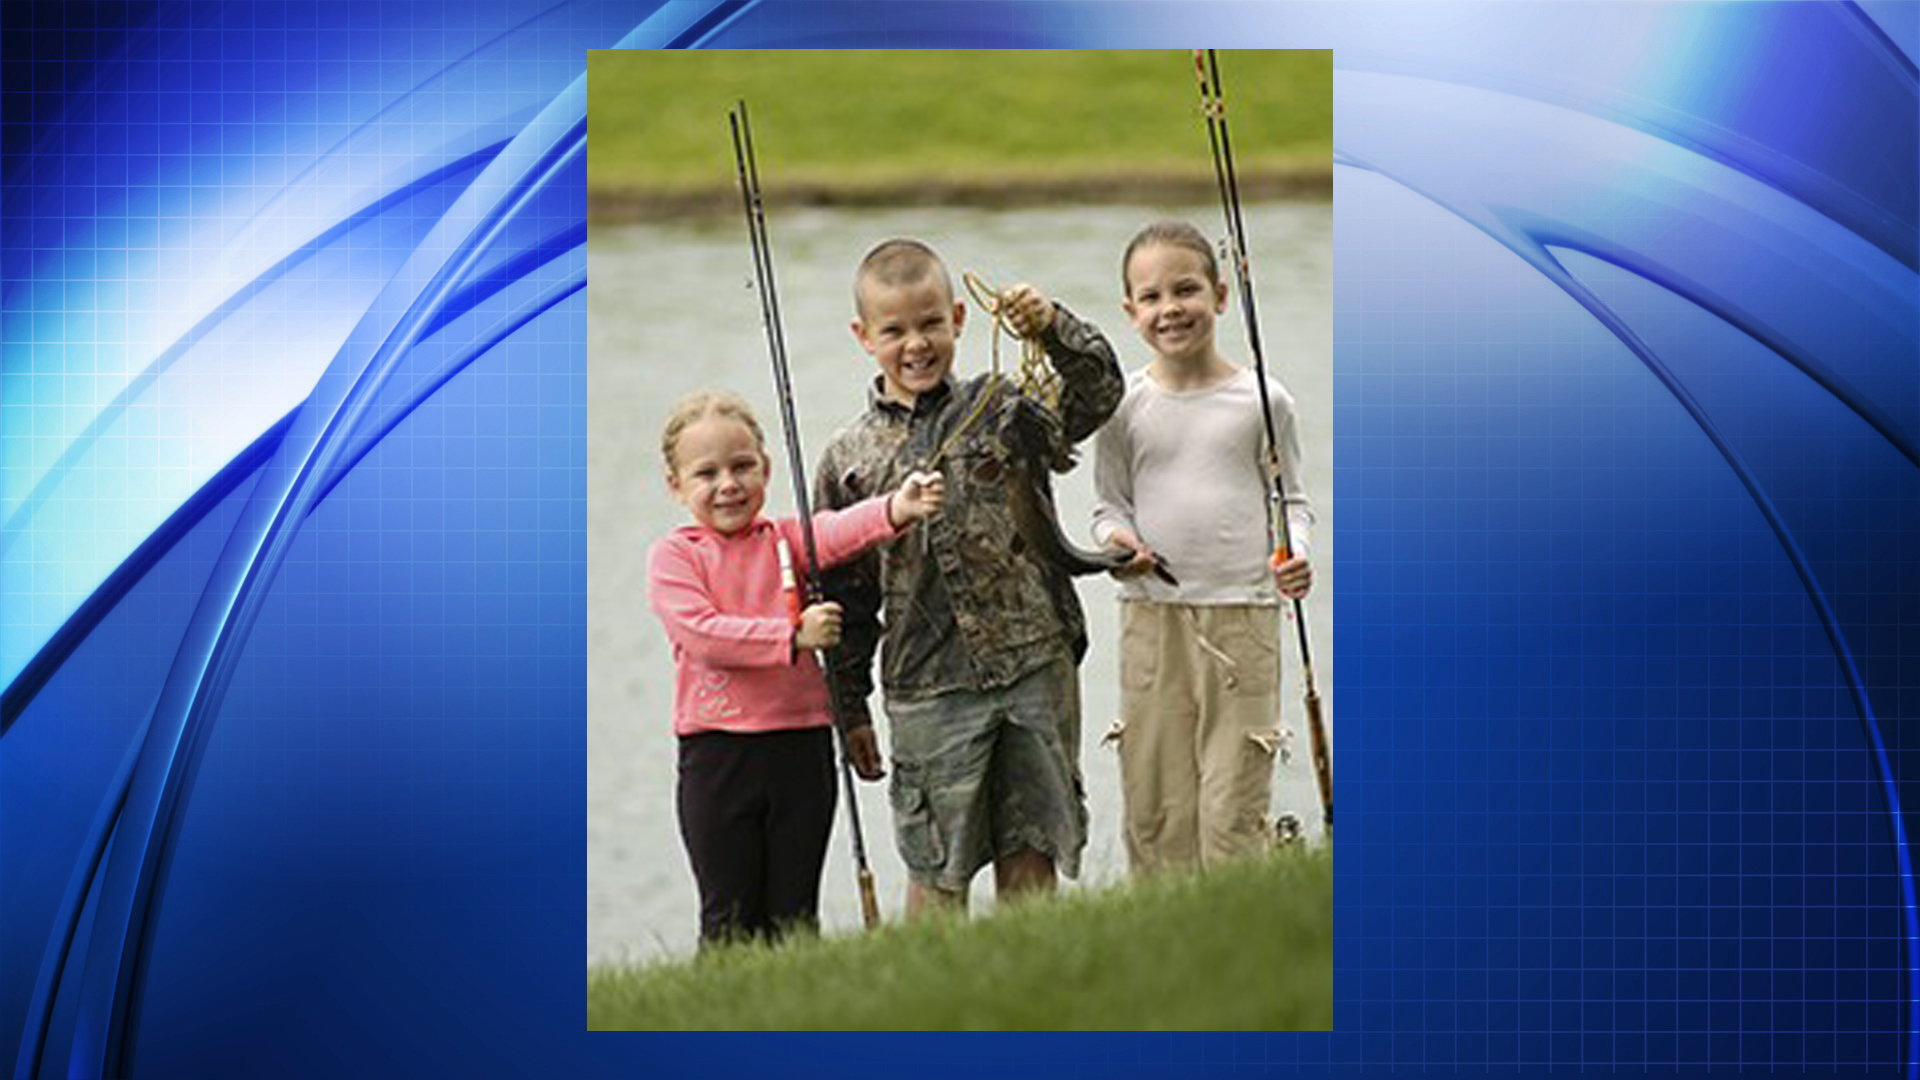 DNR offers free fishing, state parks and ORV trail use this